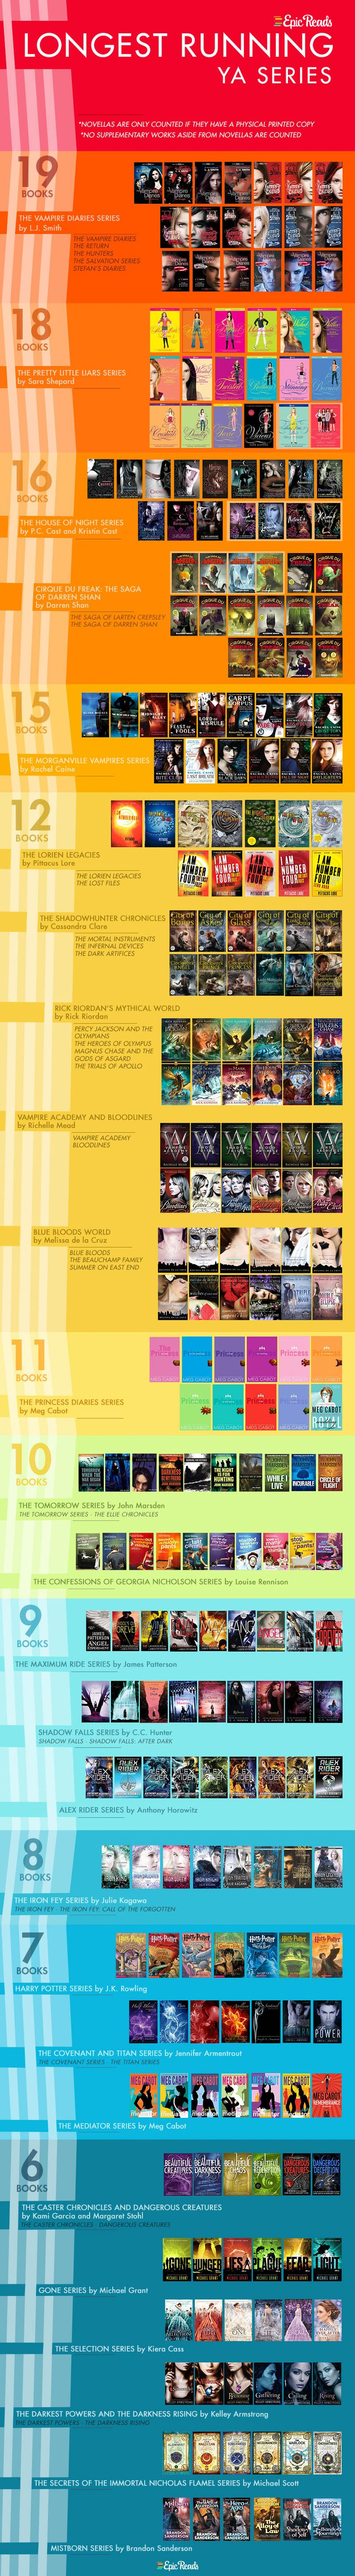 The Longest Running Series in YA Lit - an infographic by Epic Reads